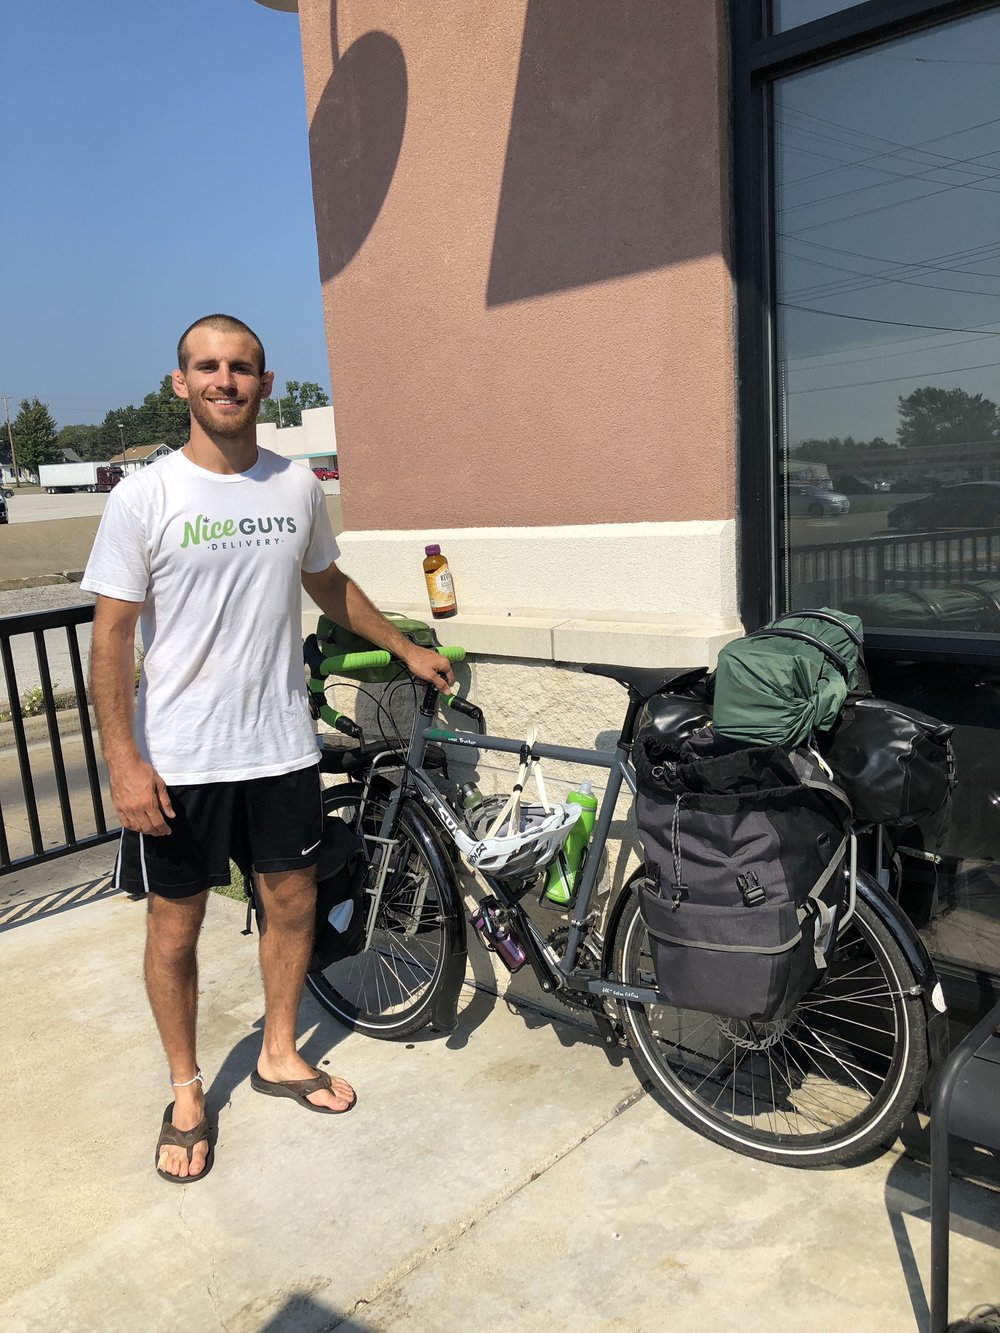 High Mileage Tour - Article 2: Biking across America to help end cannabis stigma